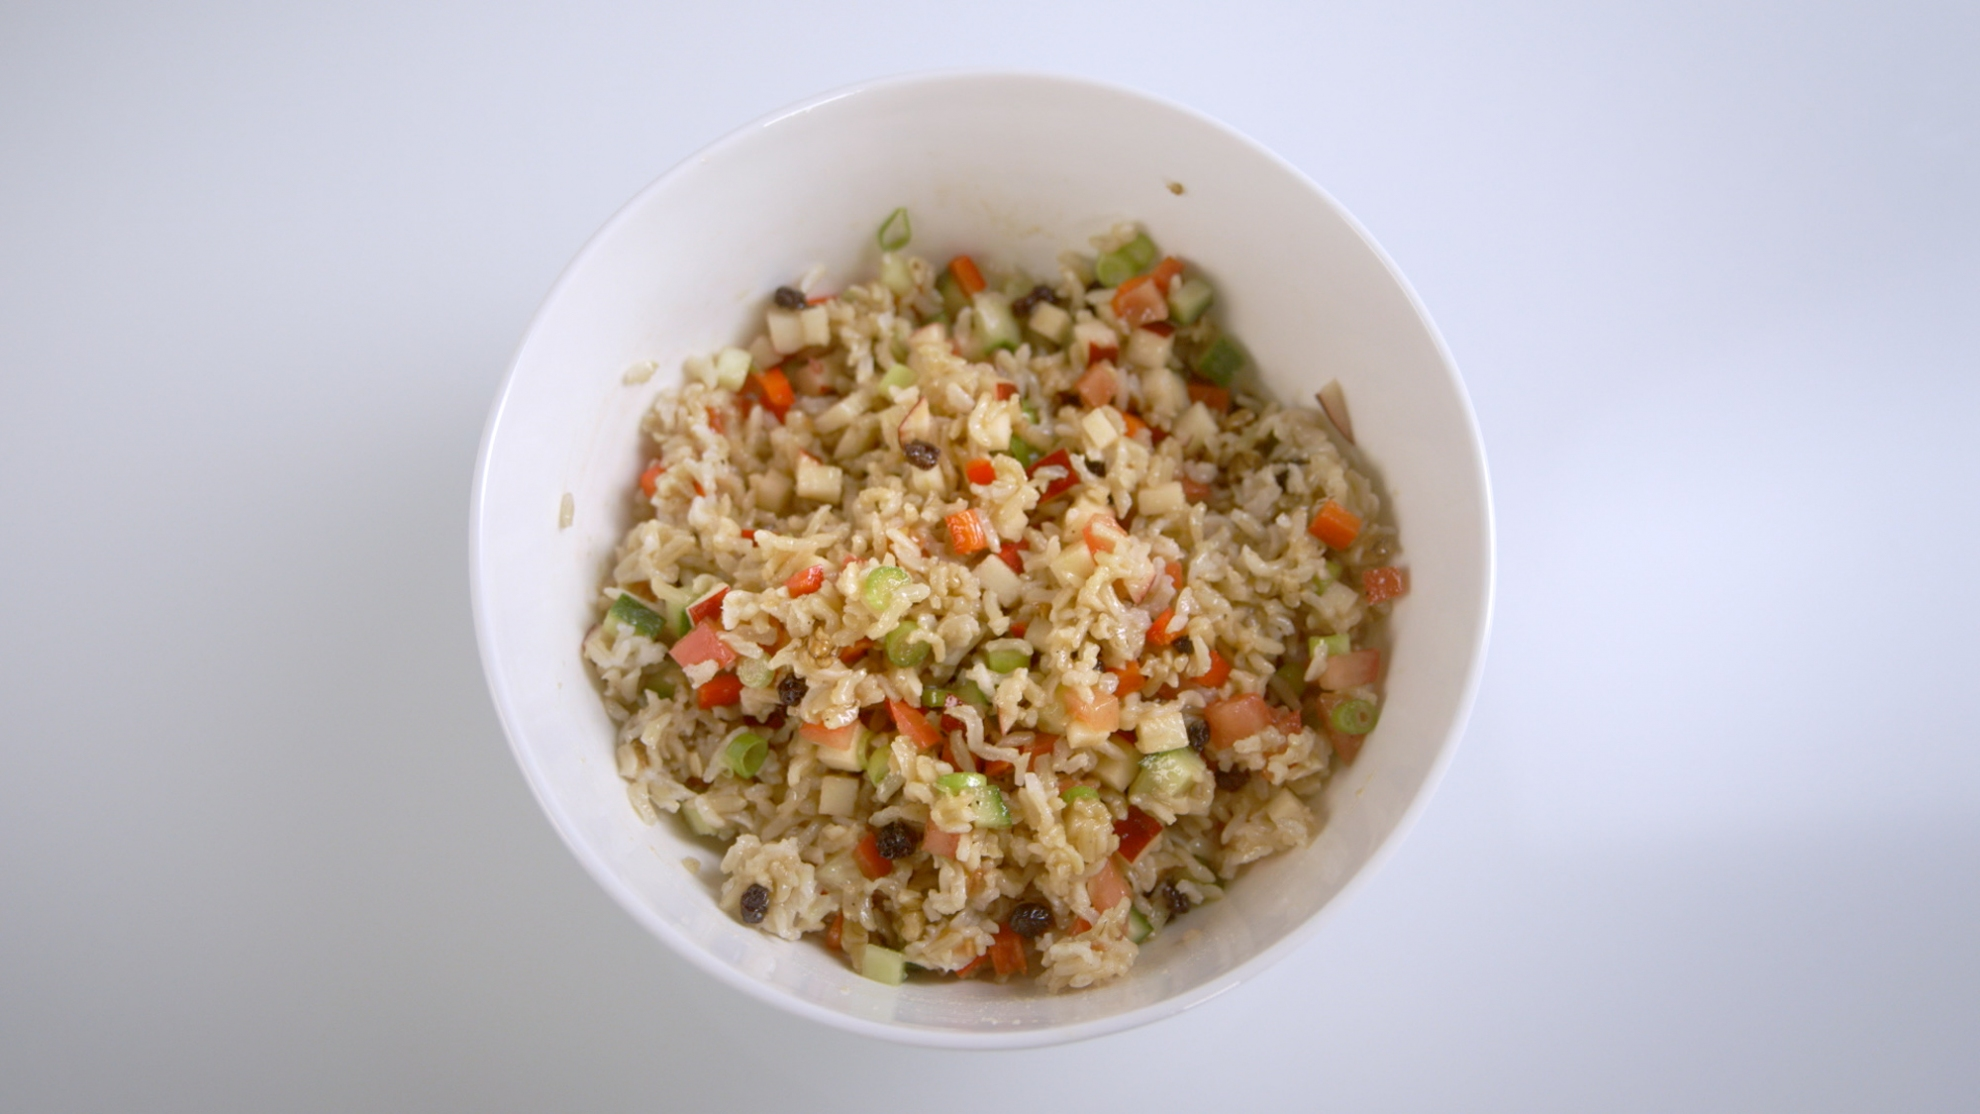 How To Make Microwave Brown Rice Cooking Brown Rice Salad Recipes Delia  Online